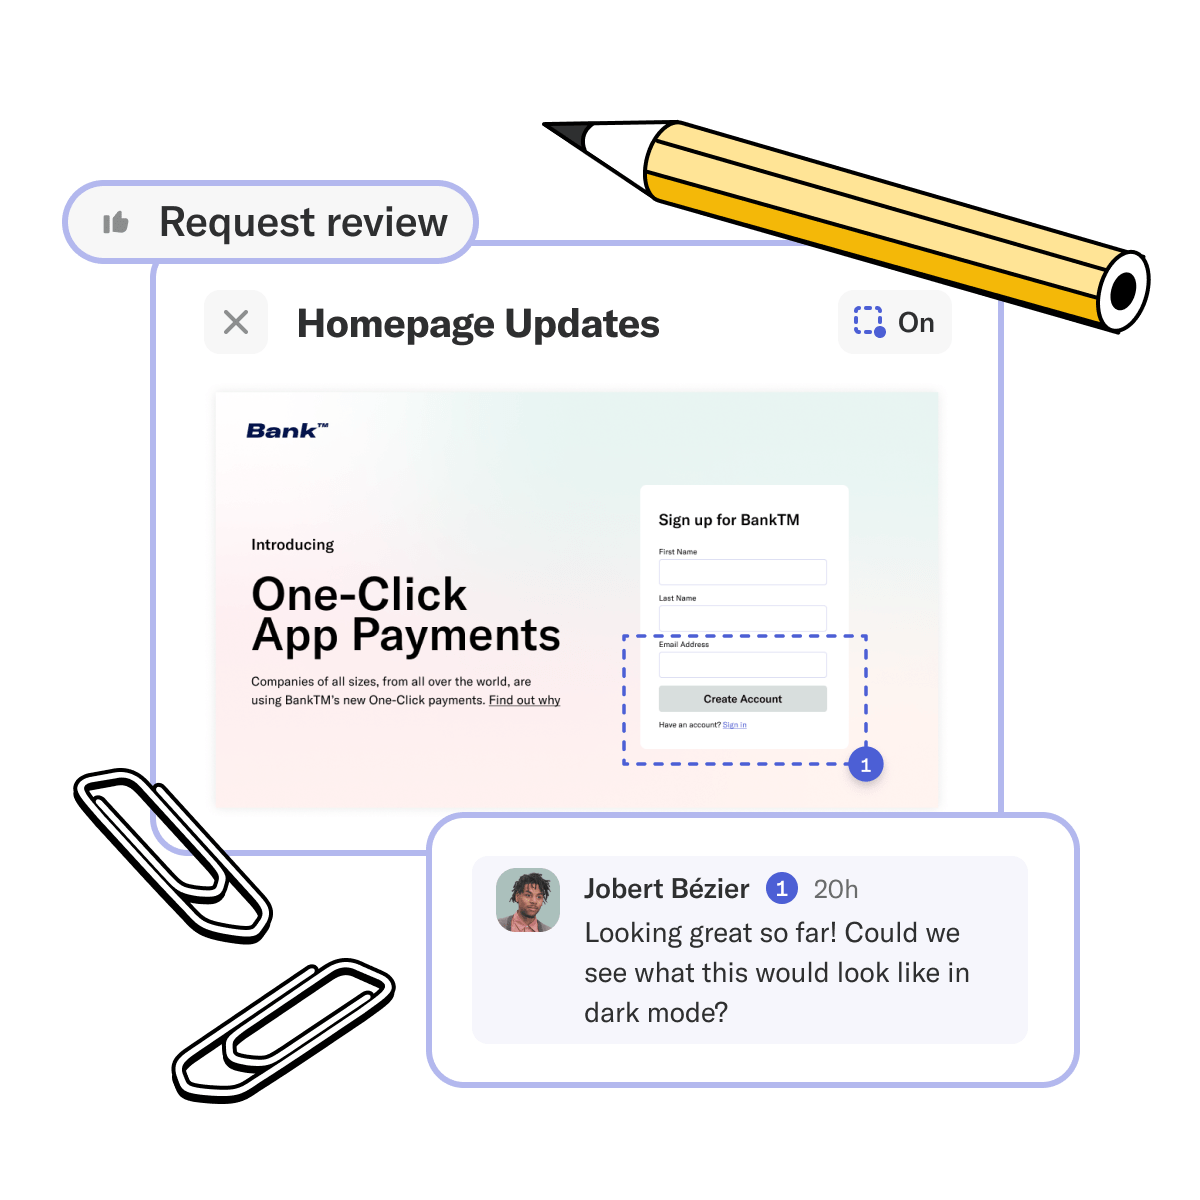 Notebooks request review UI